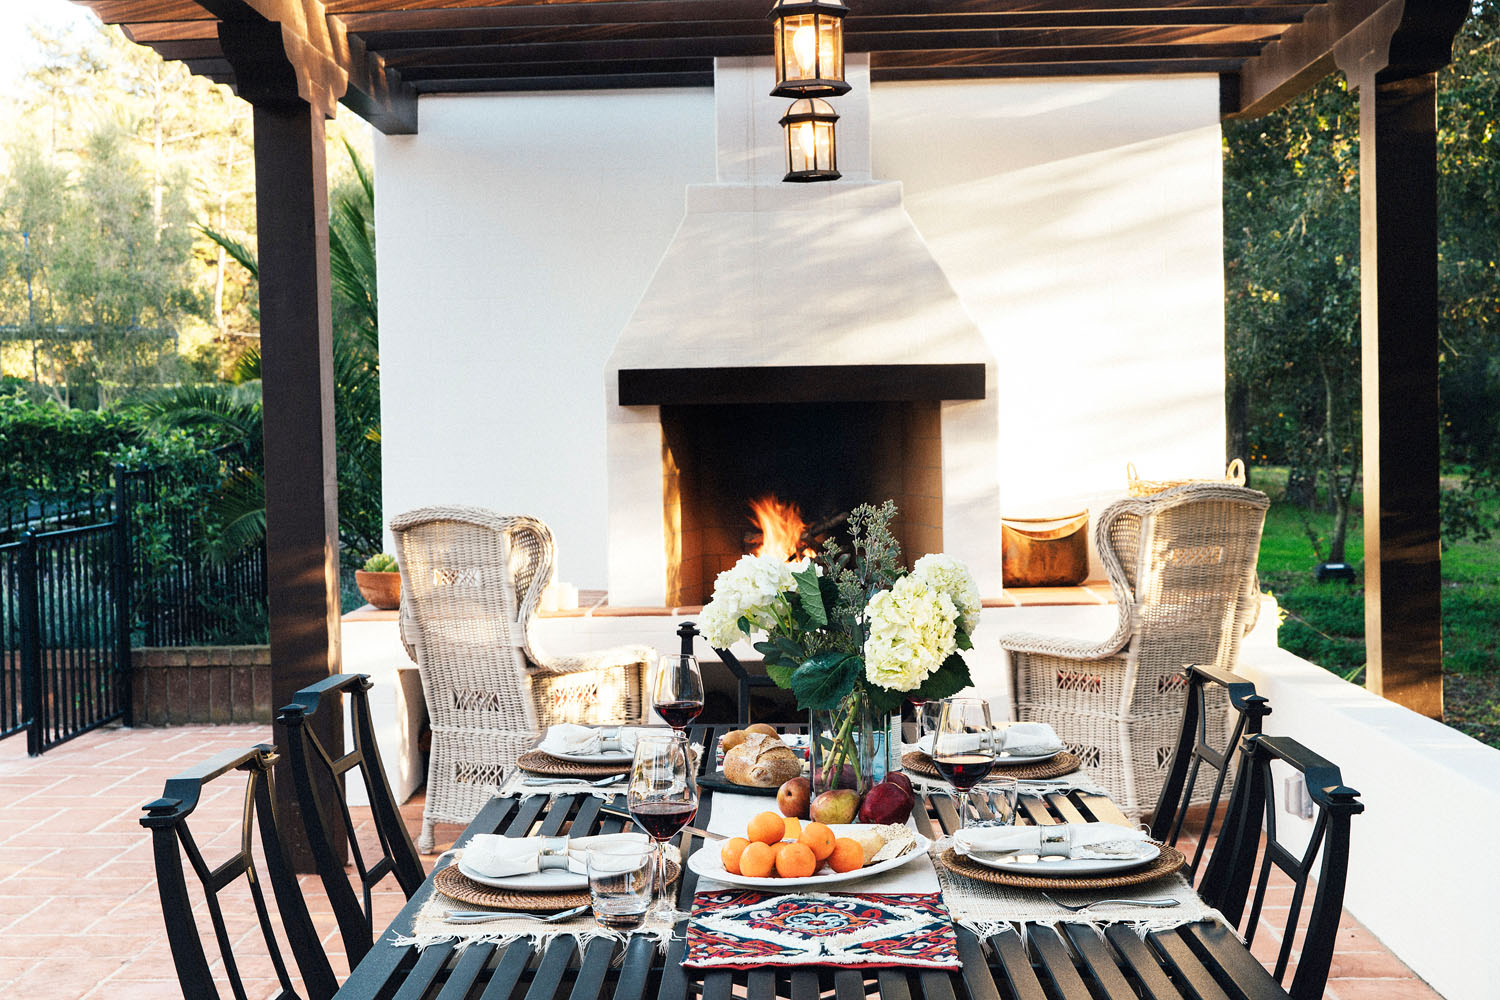 Outdoor Living Area with Fireplace and Pergola